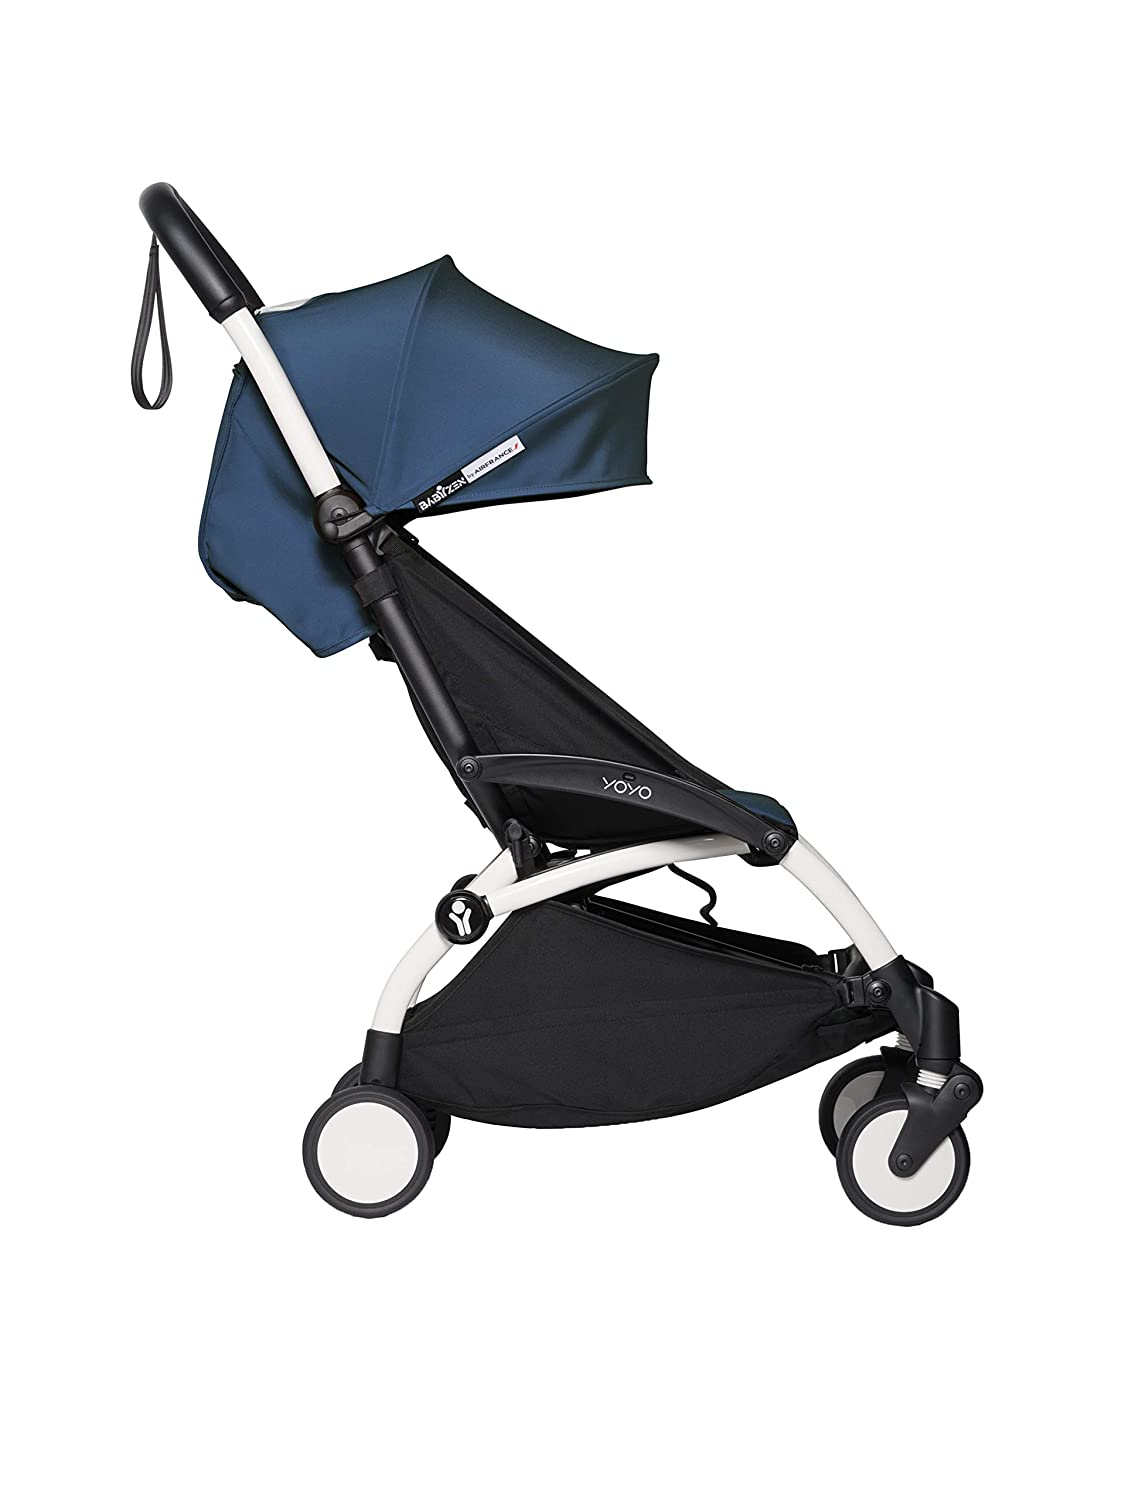 Stroller BABYZEN YOYO2 6 White Frame with Air France Blue Seat Cushion /& Canopy